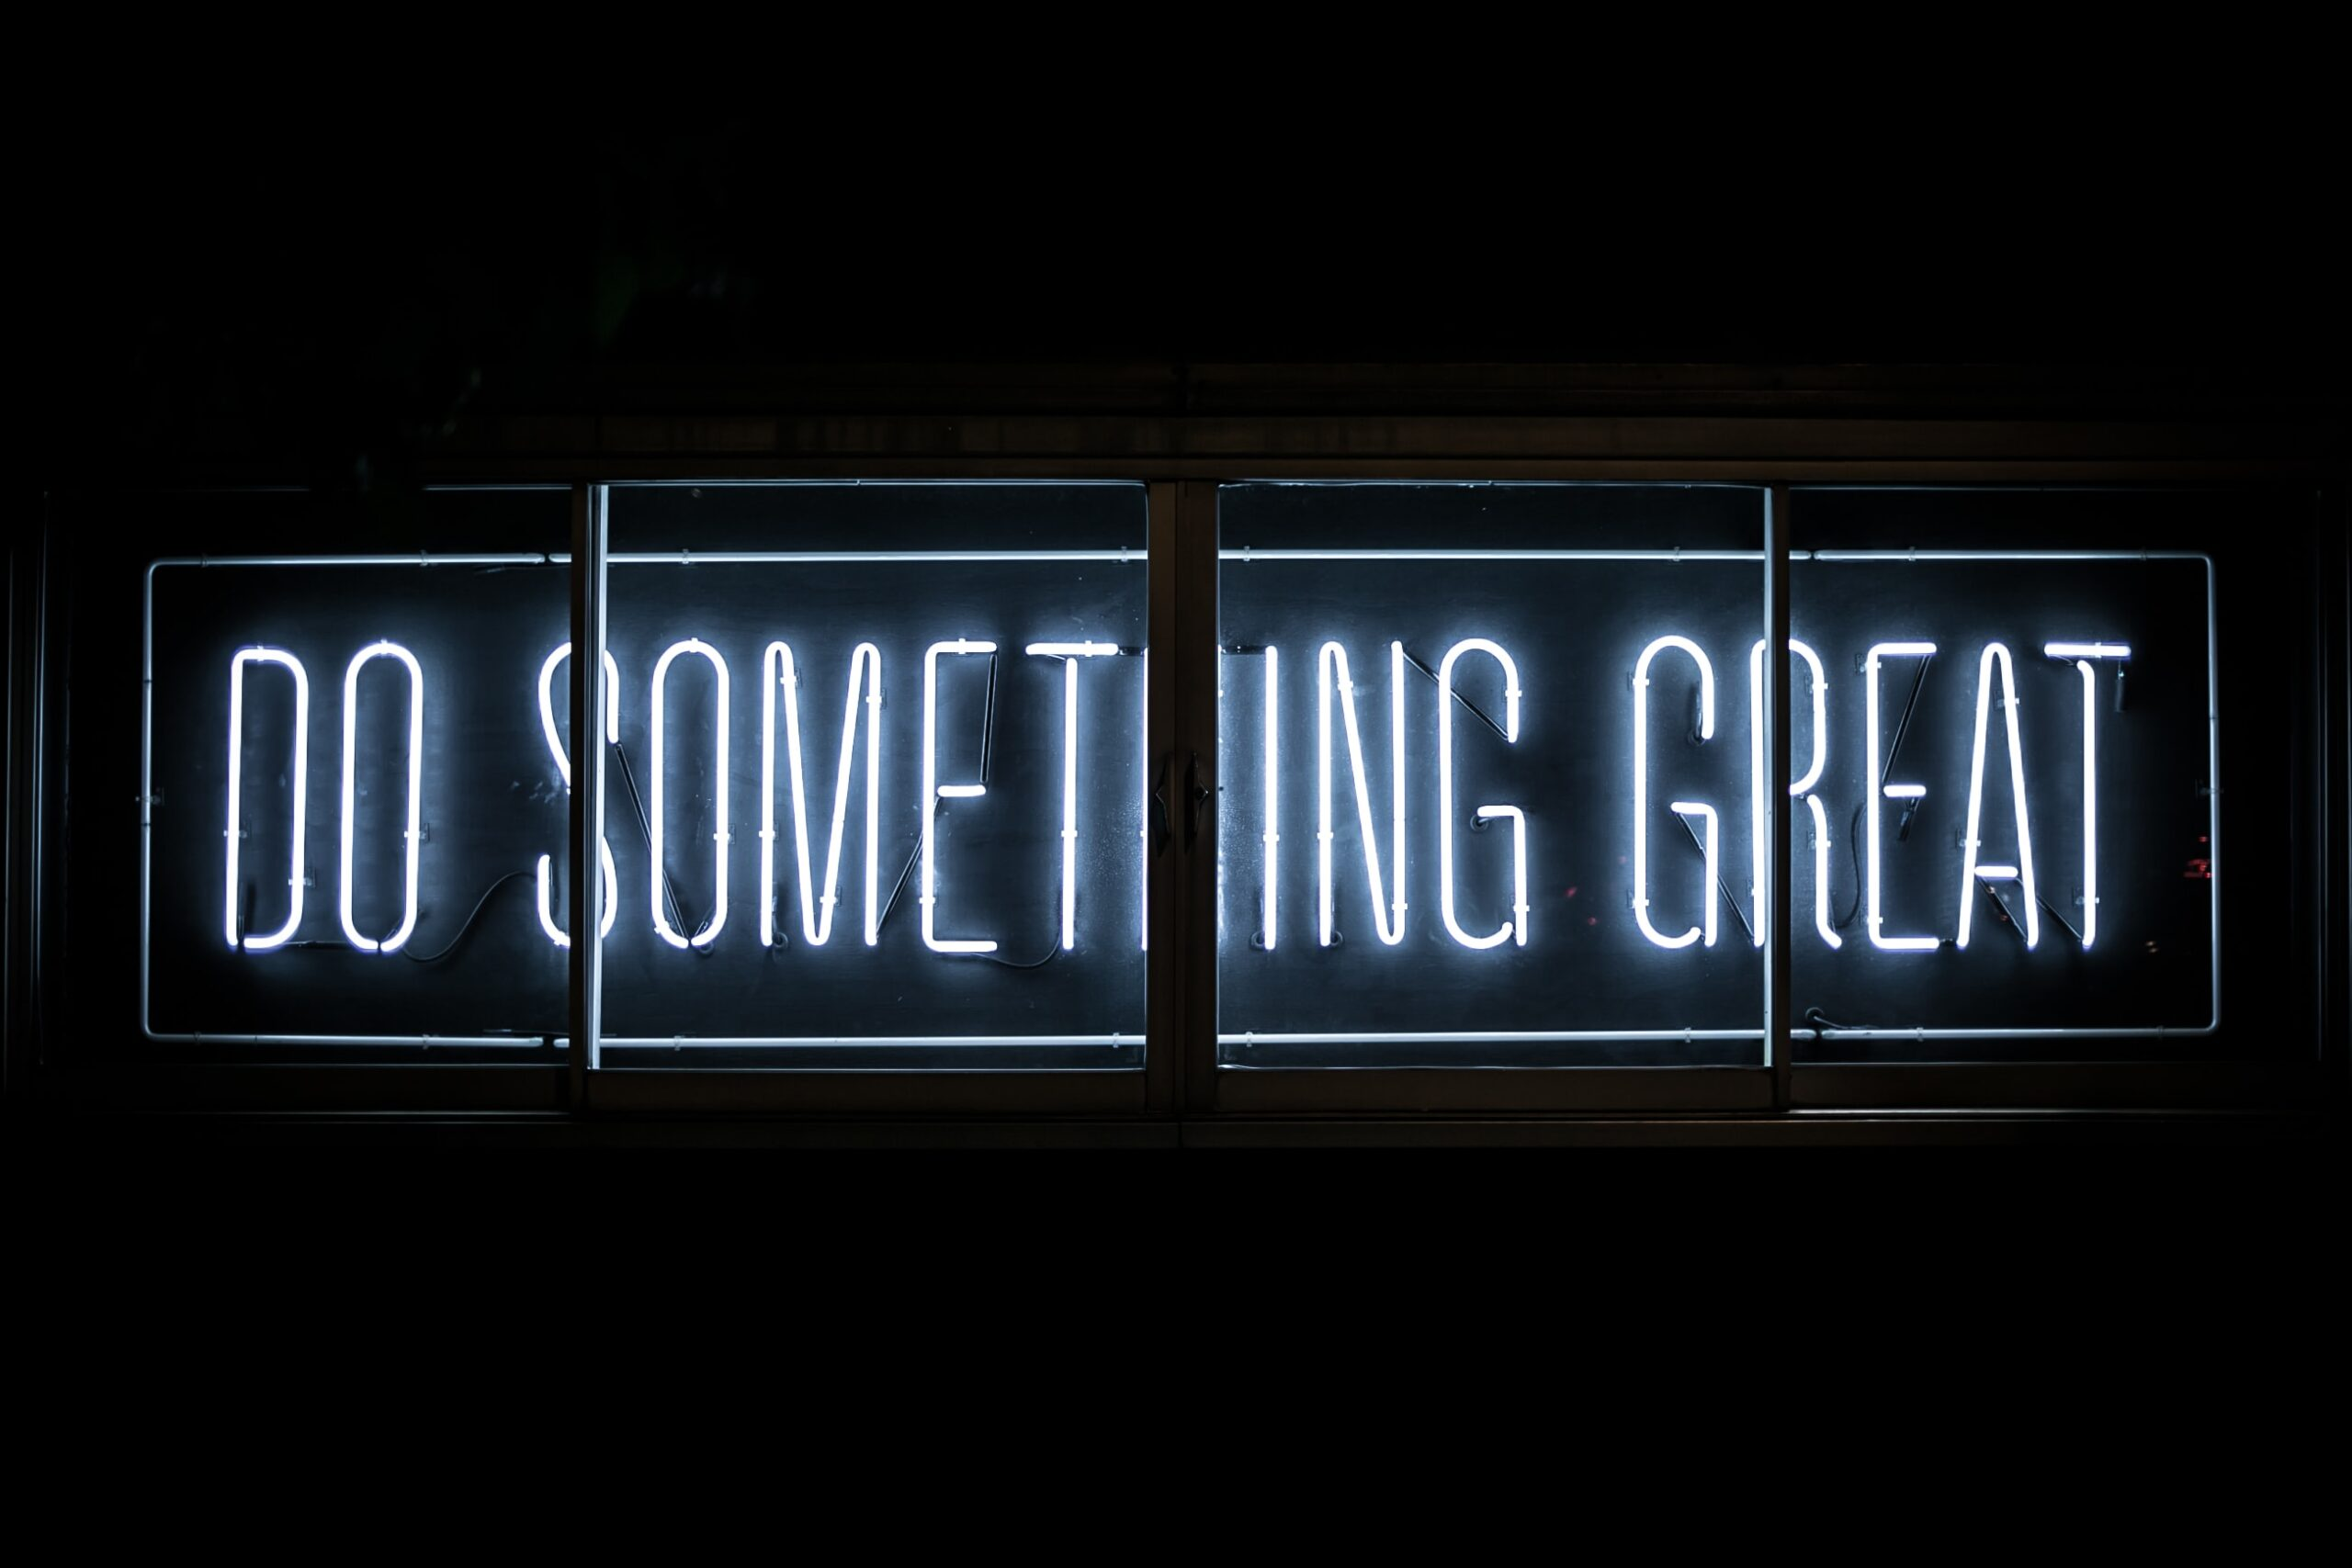 background-à propos-do something great